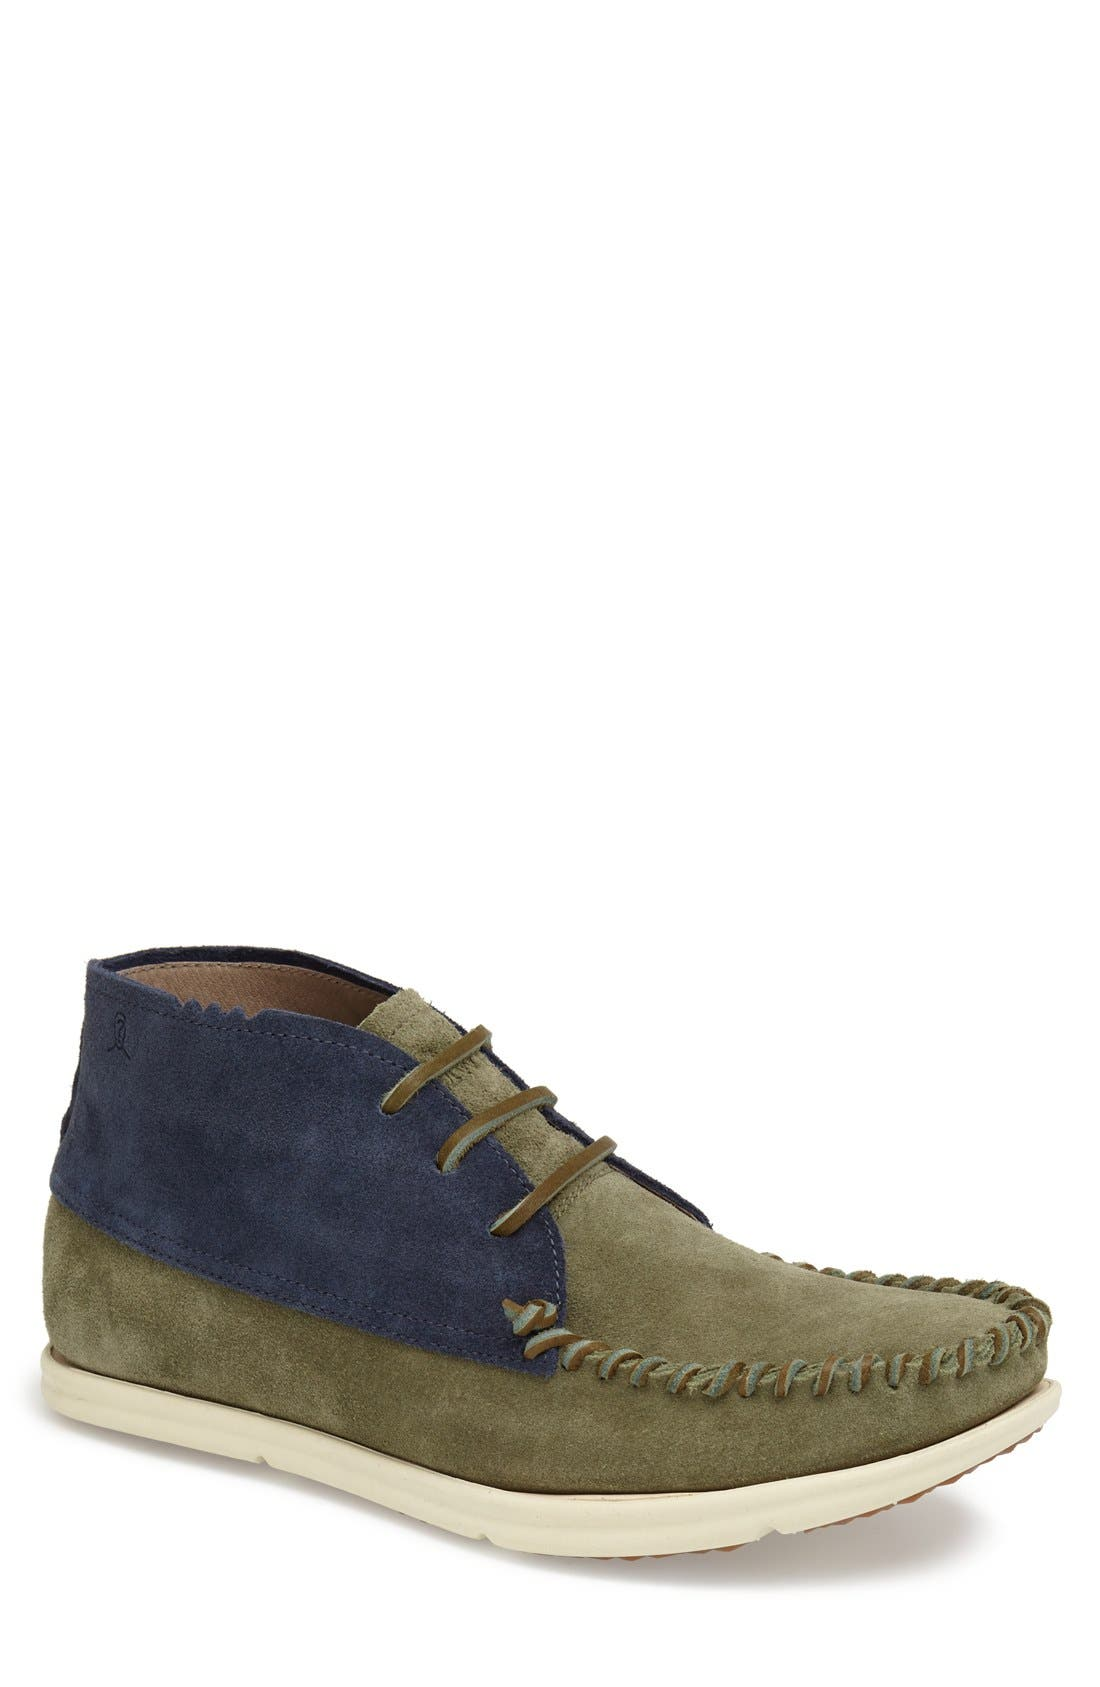 Main Image - ohw? 'Louis' Two Tone Suede Moc Toe Boot (Men)